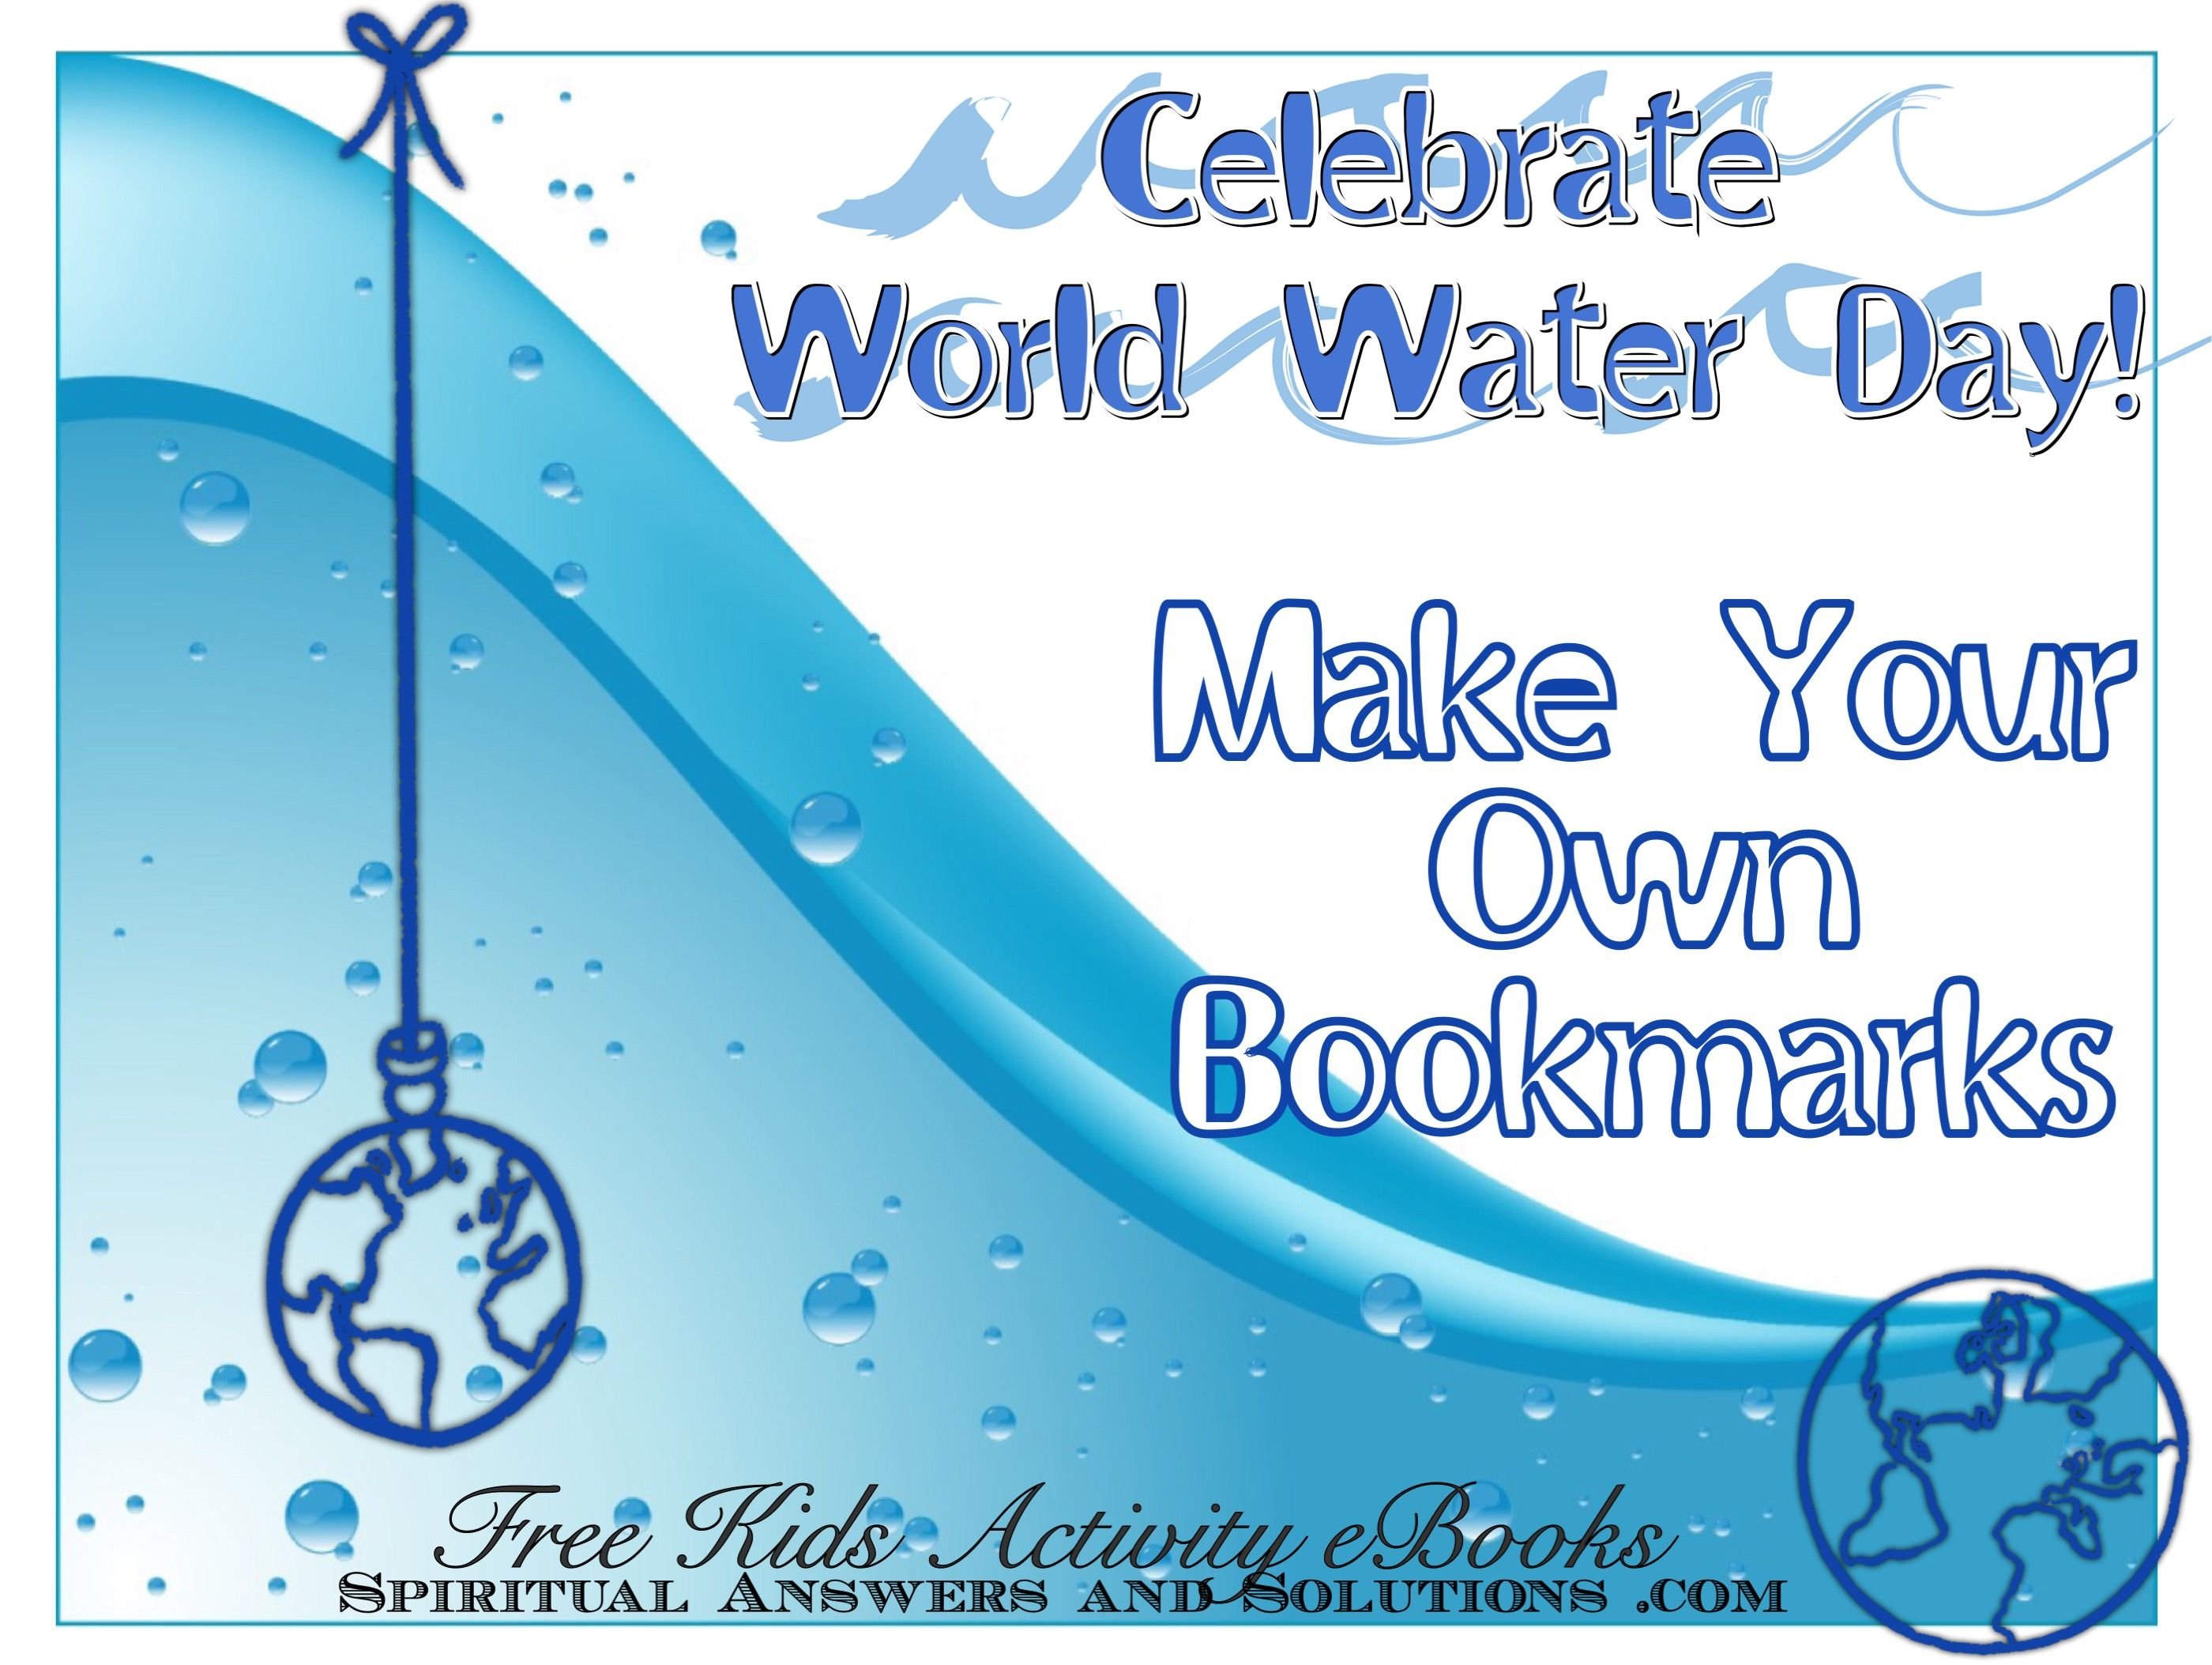 Celebrate World Water Day by making your own bookmarks! This eBook ...